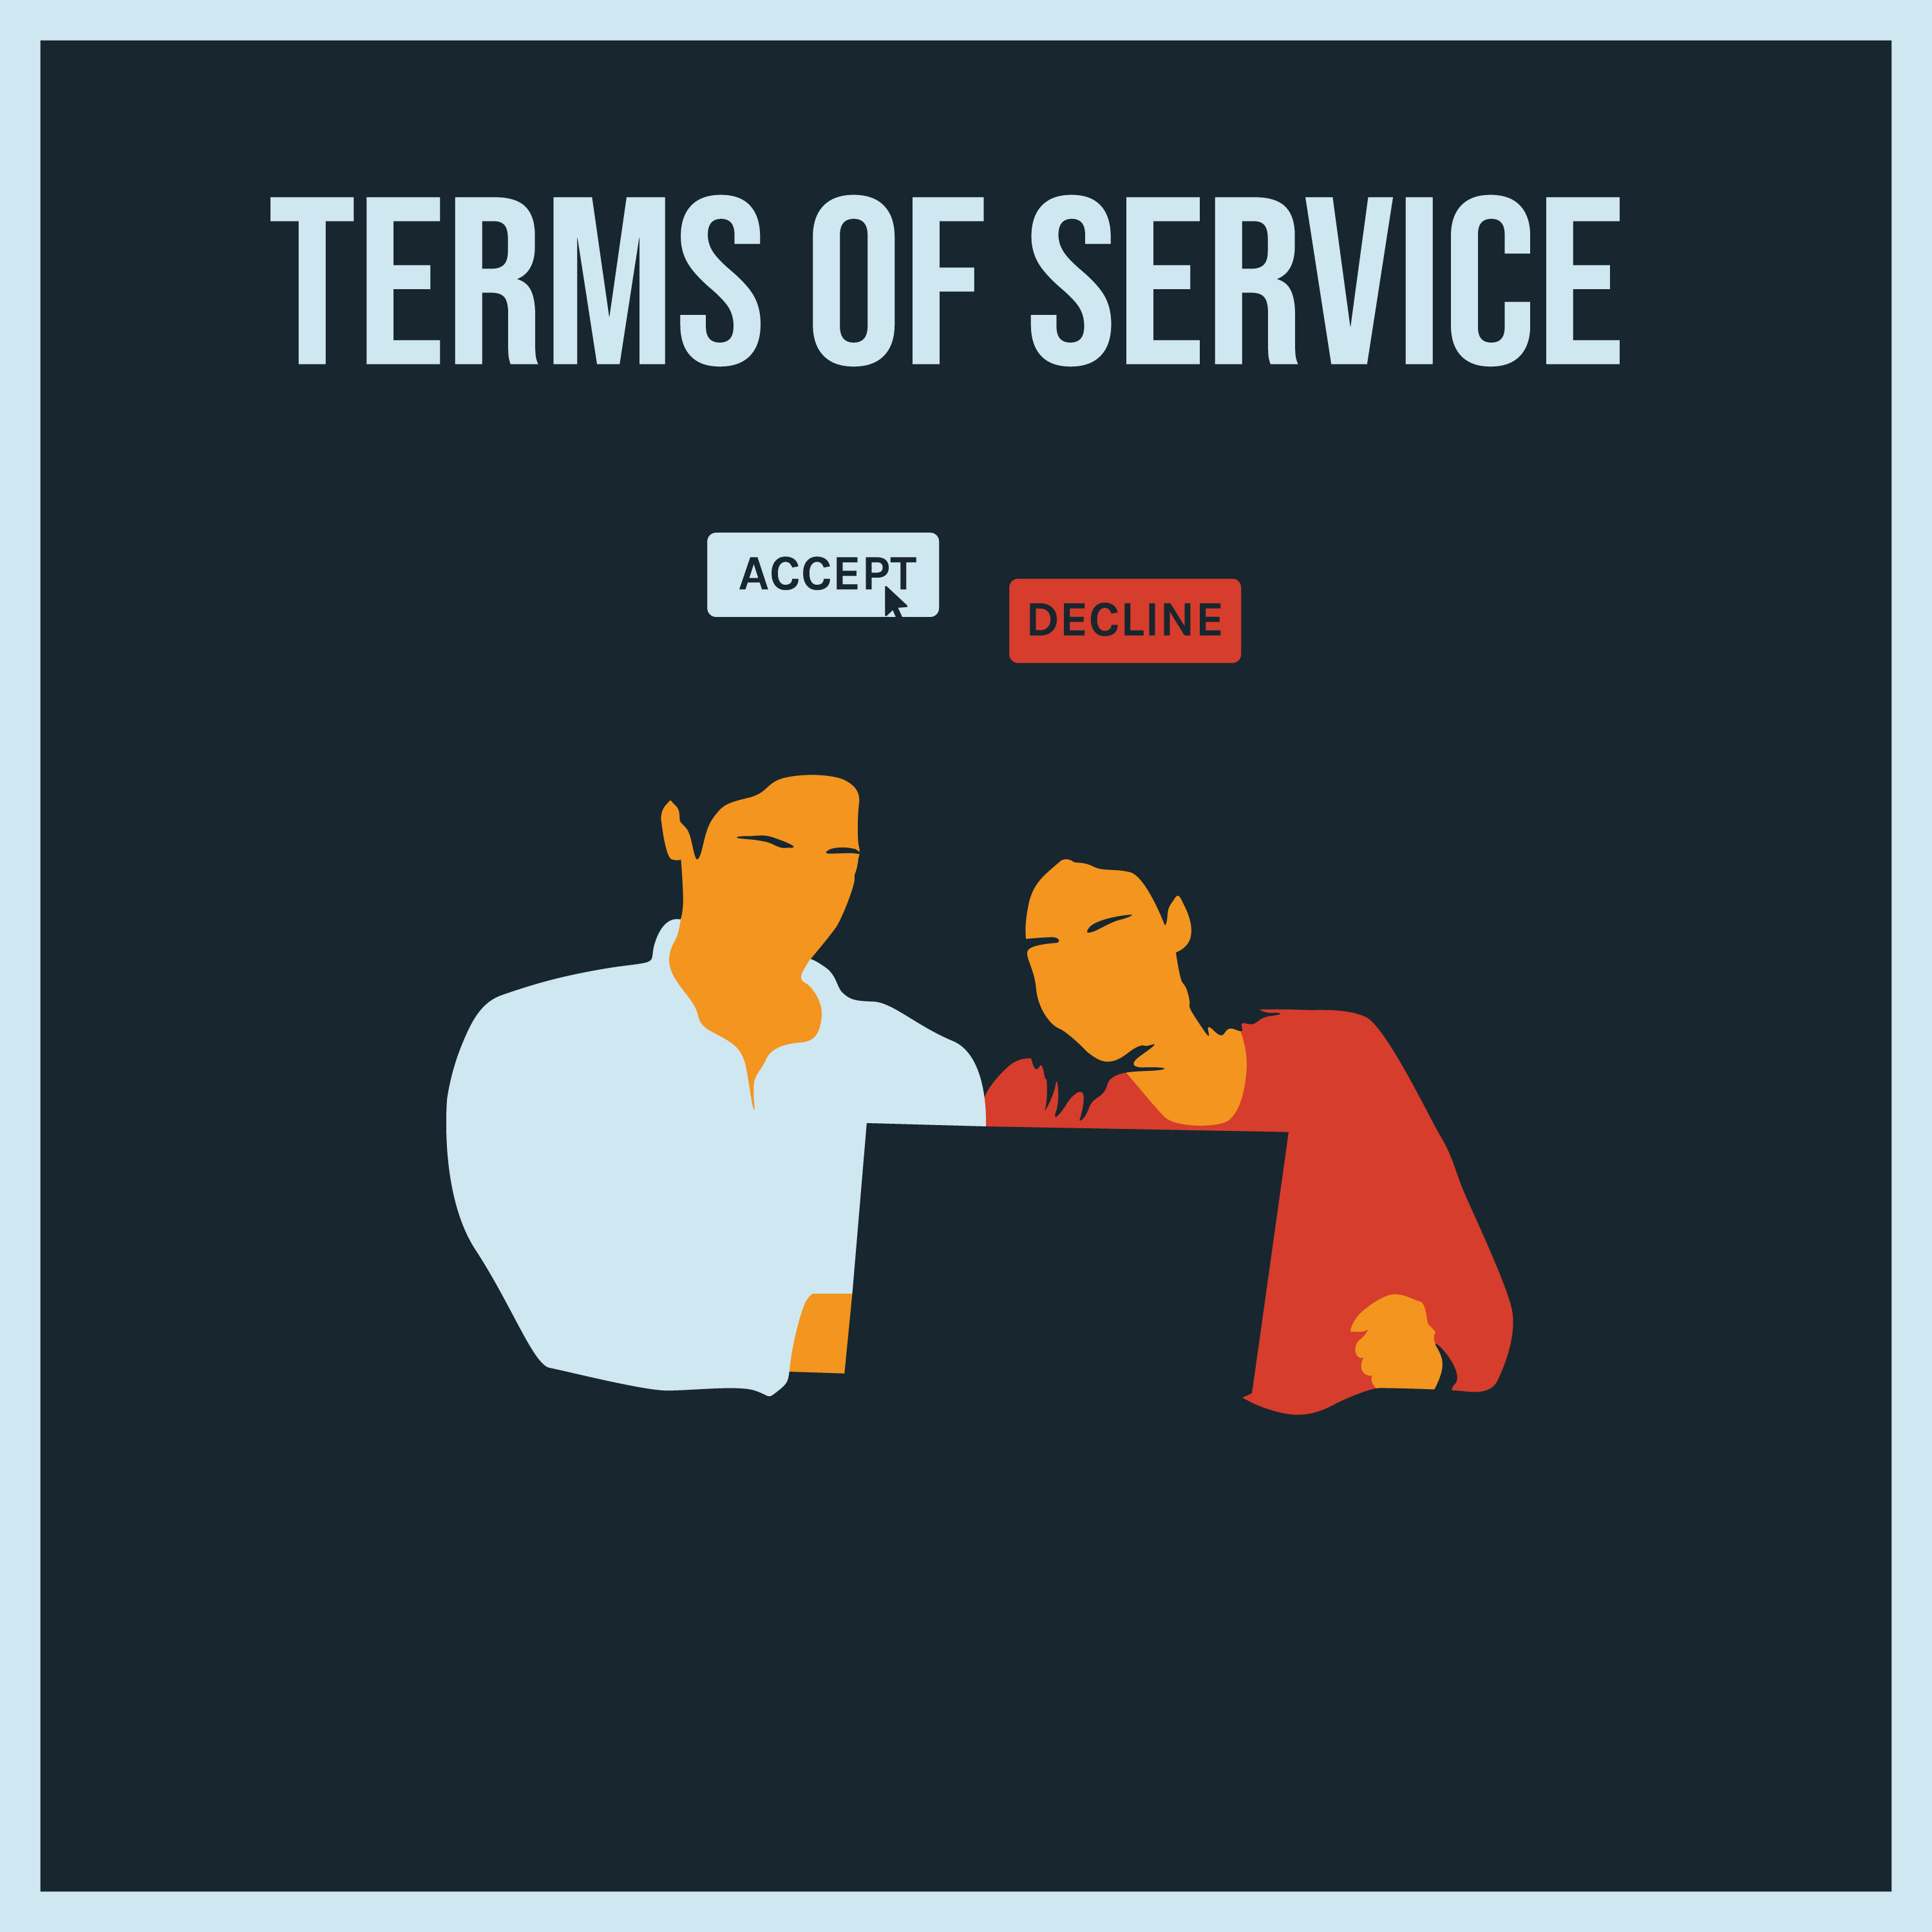 3: Terms of Service